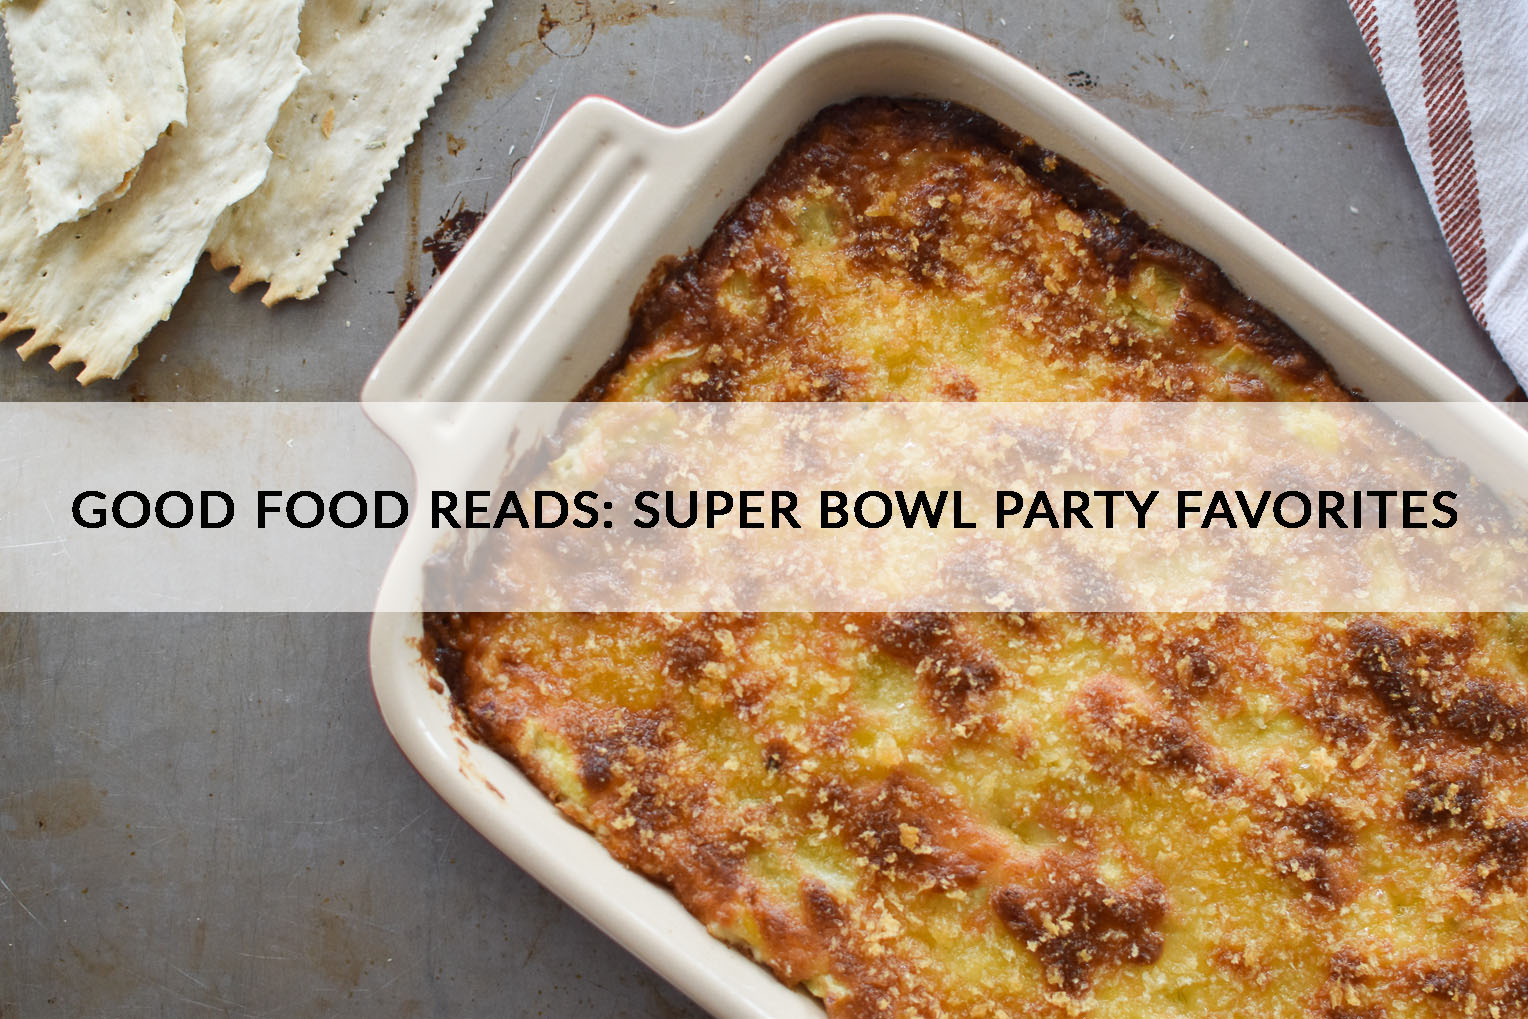 Super Bowl Party Favorites